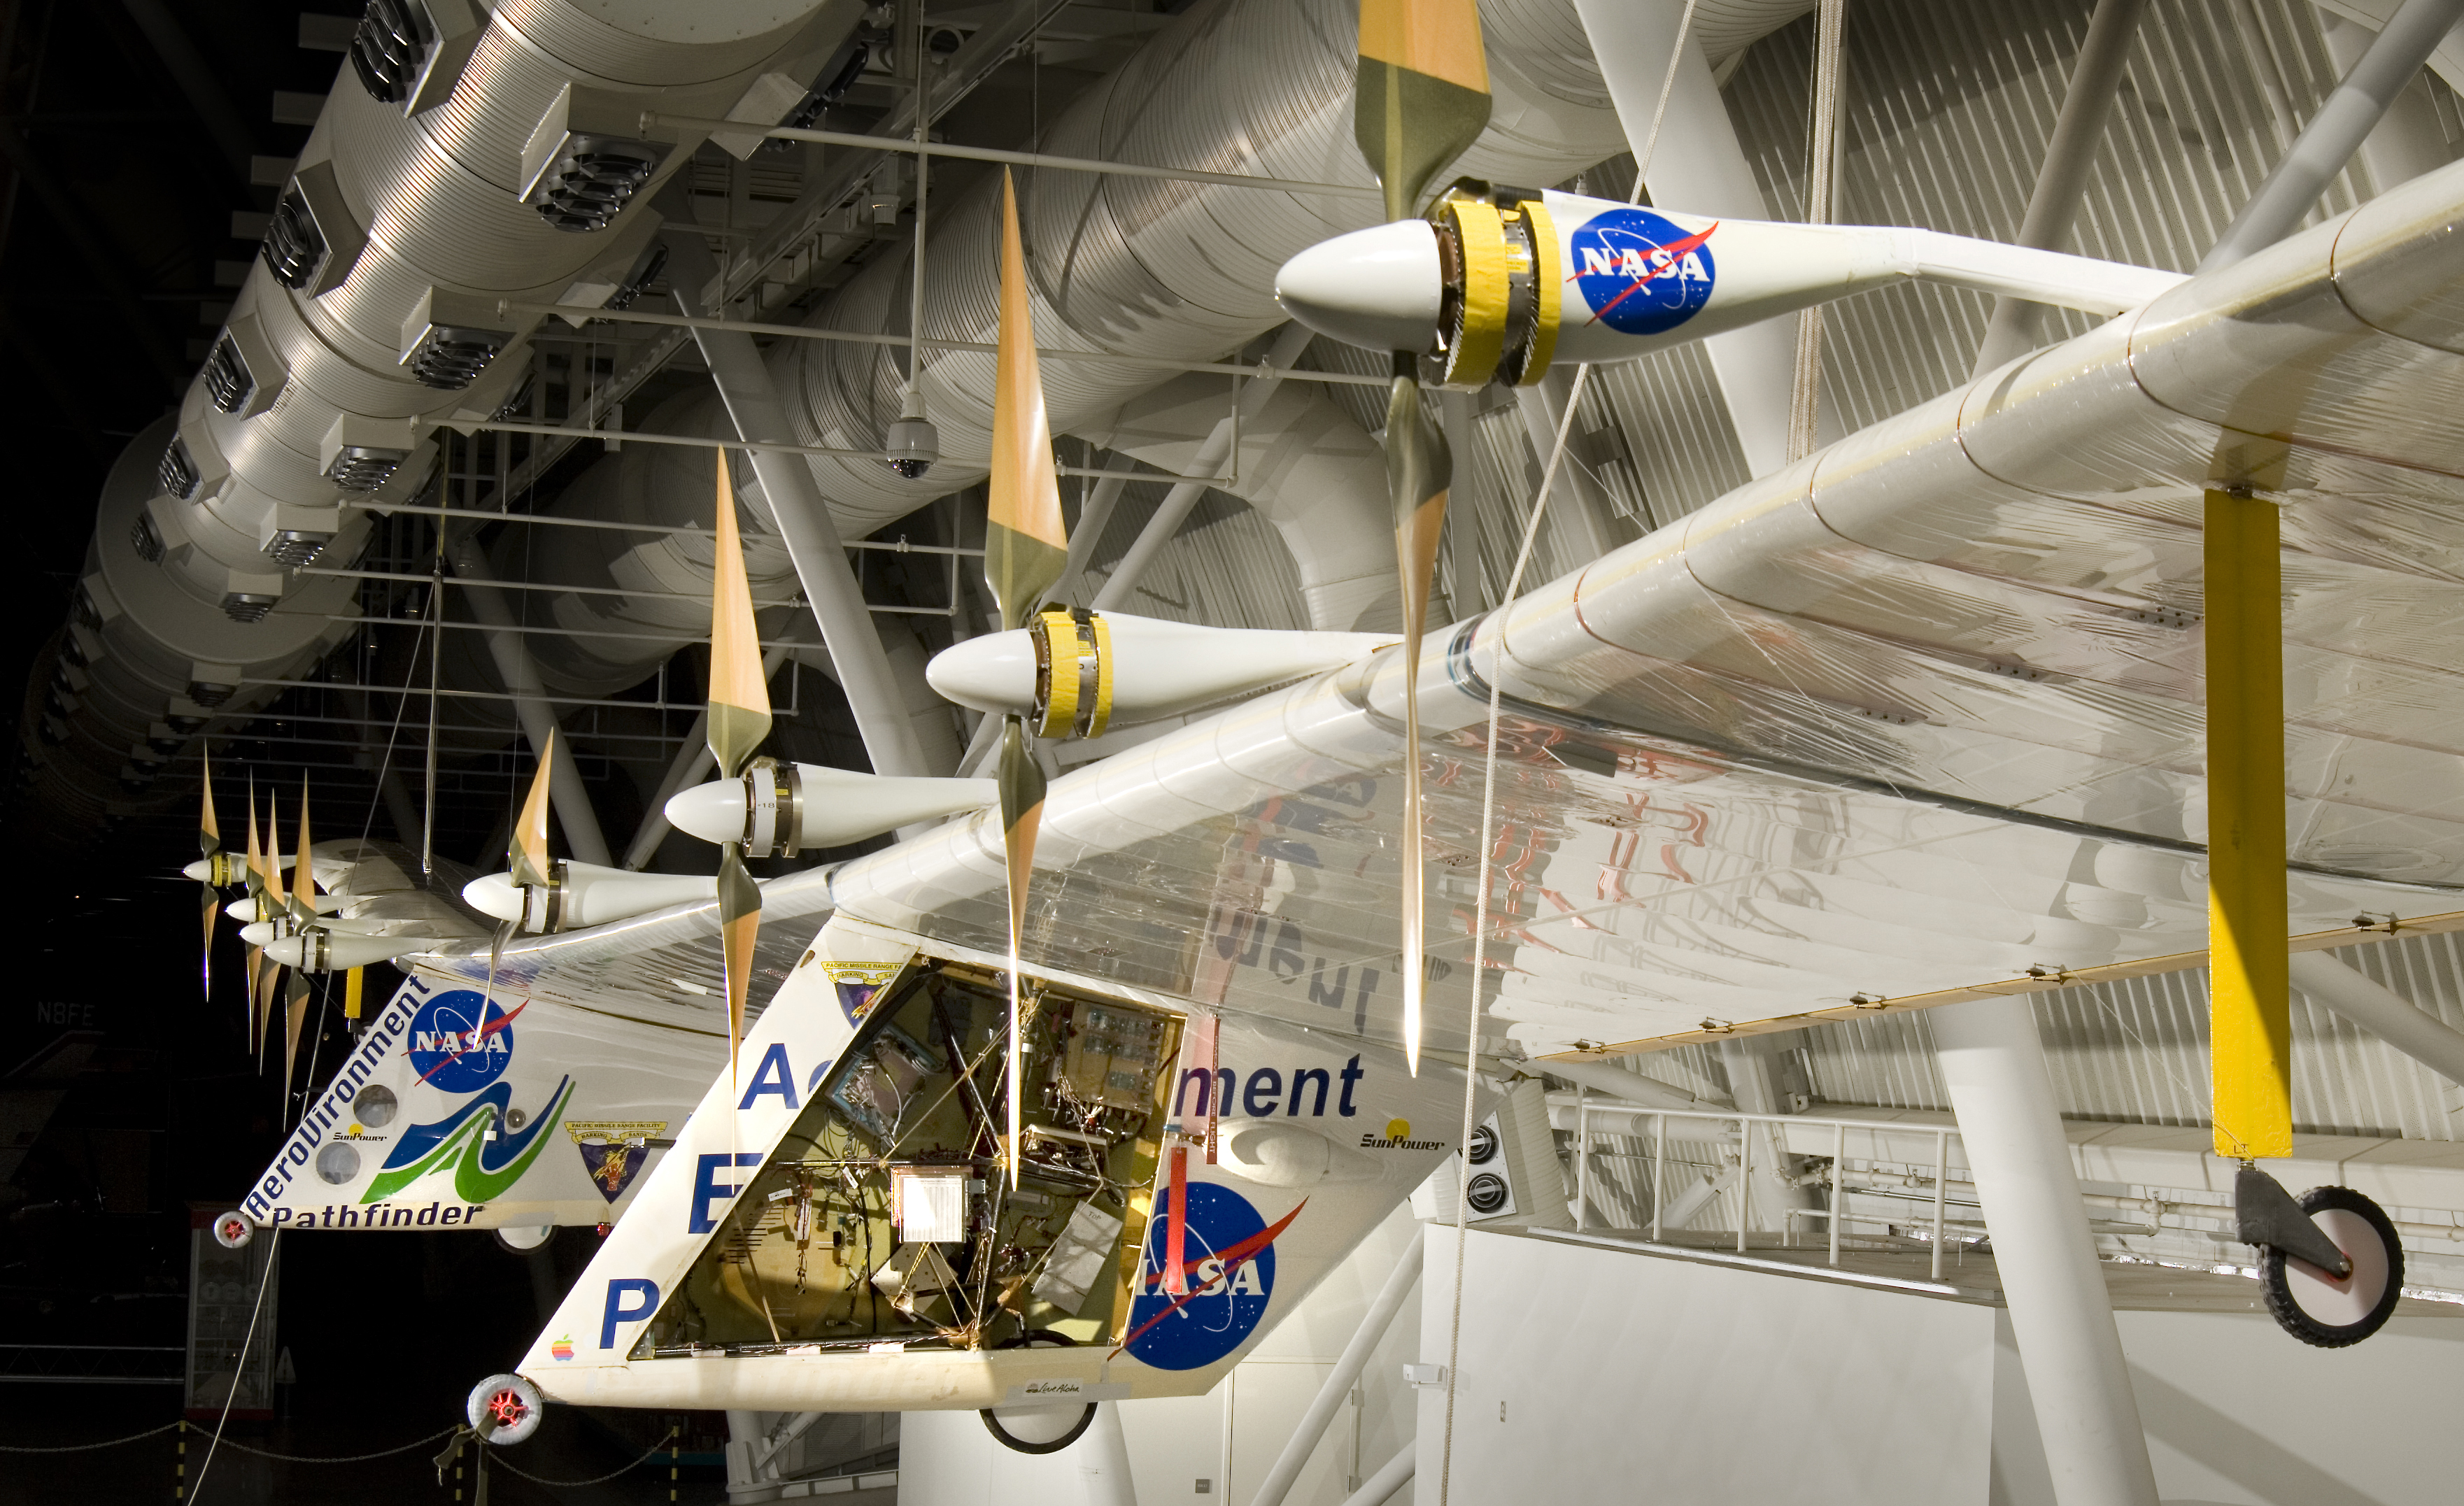 Pathfinder Plus hanging in the Udvar-Hazy Center